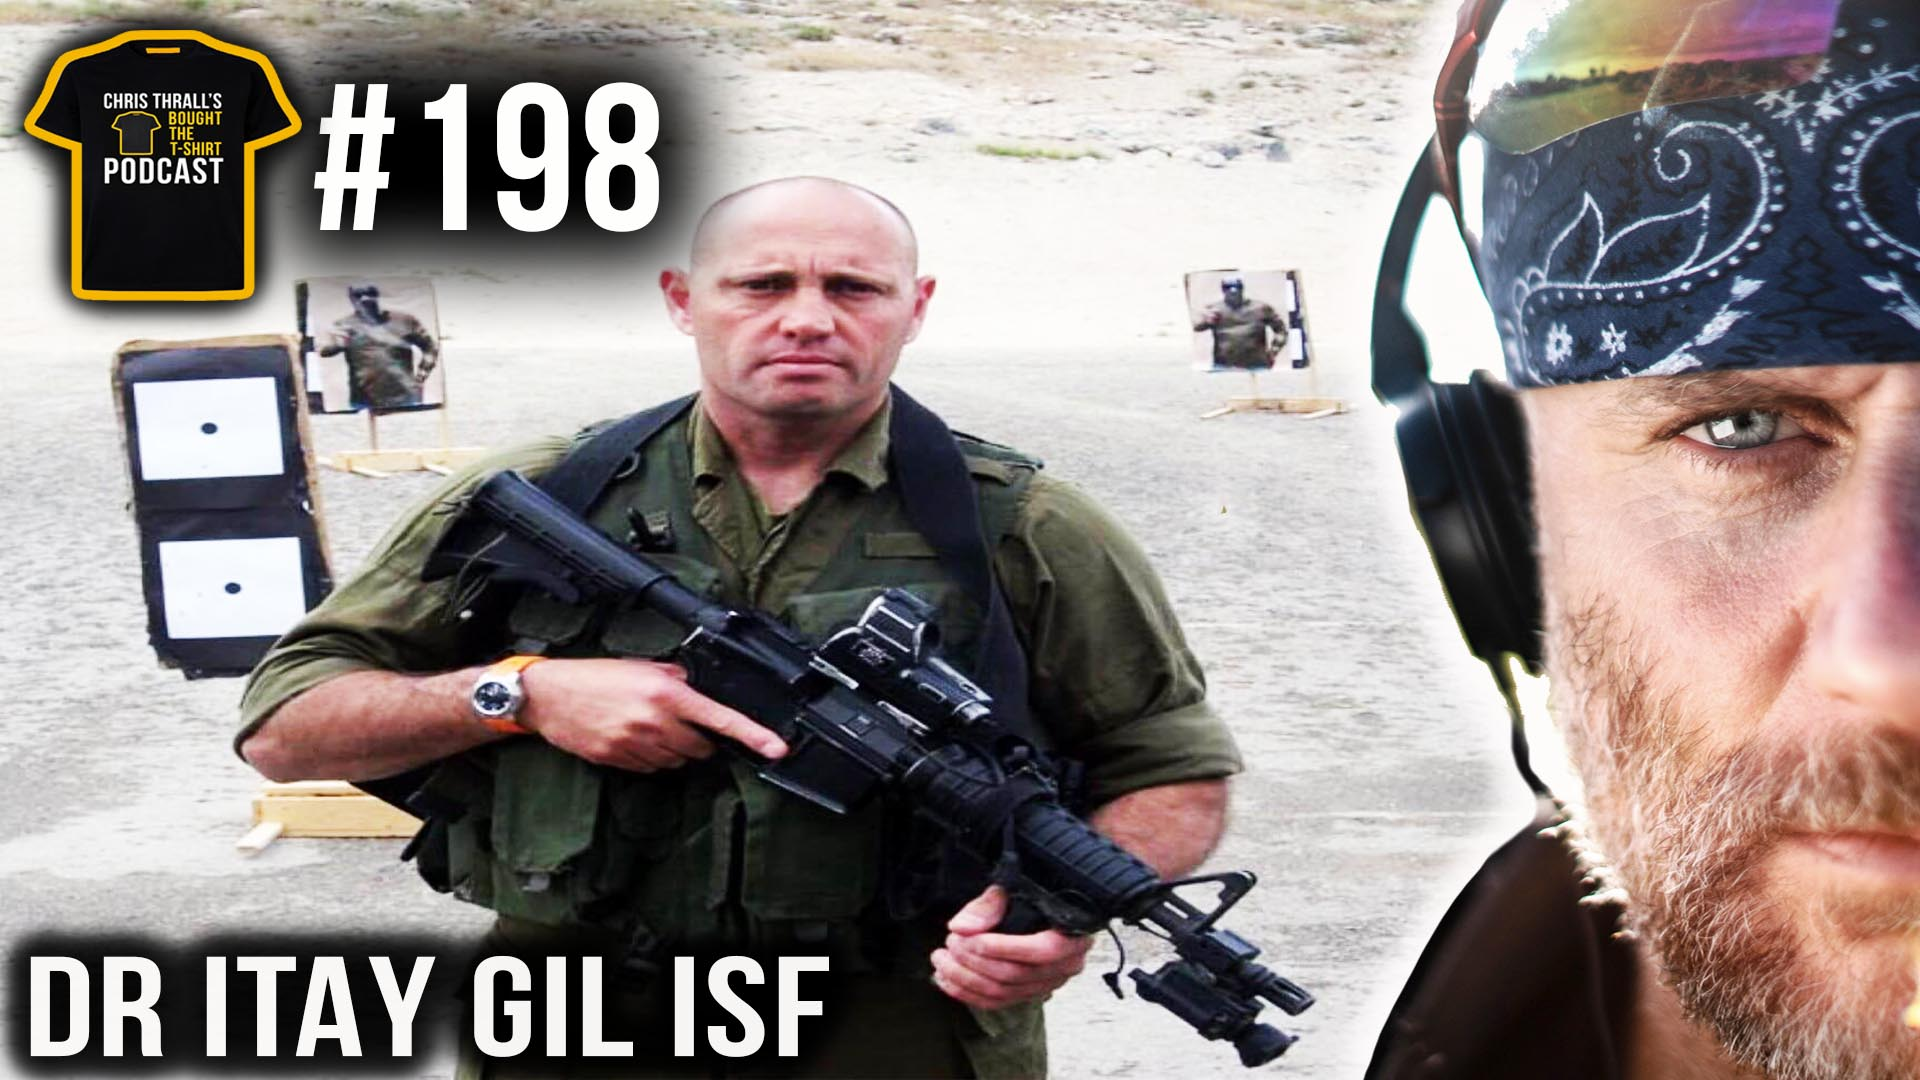 Israeli Special Forces Commander | Dr Itay Gil | Podcast #198